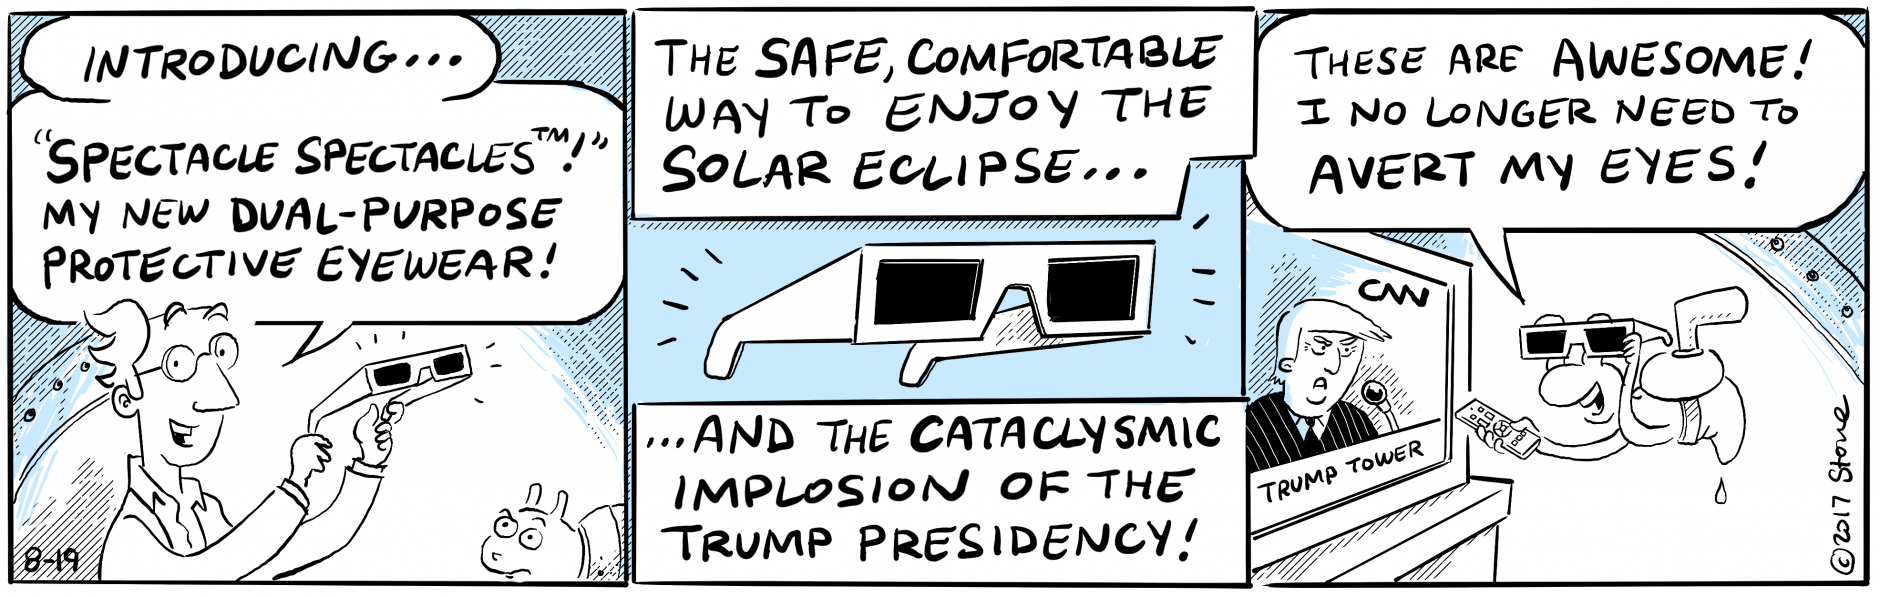 Some things shouldn't be observed without proper polarization. #Charlottesville #SolarEclipse2017 @realDonaldTrump